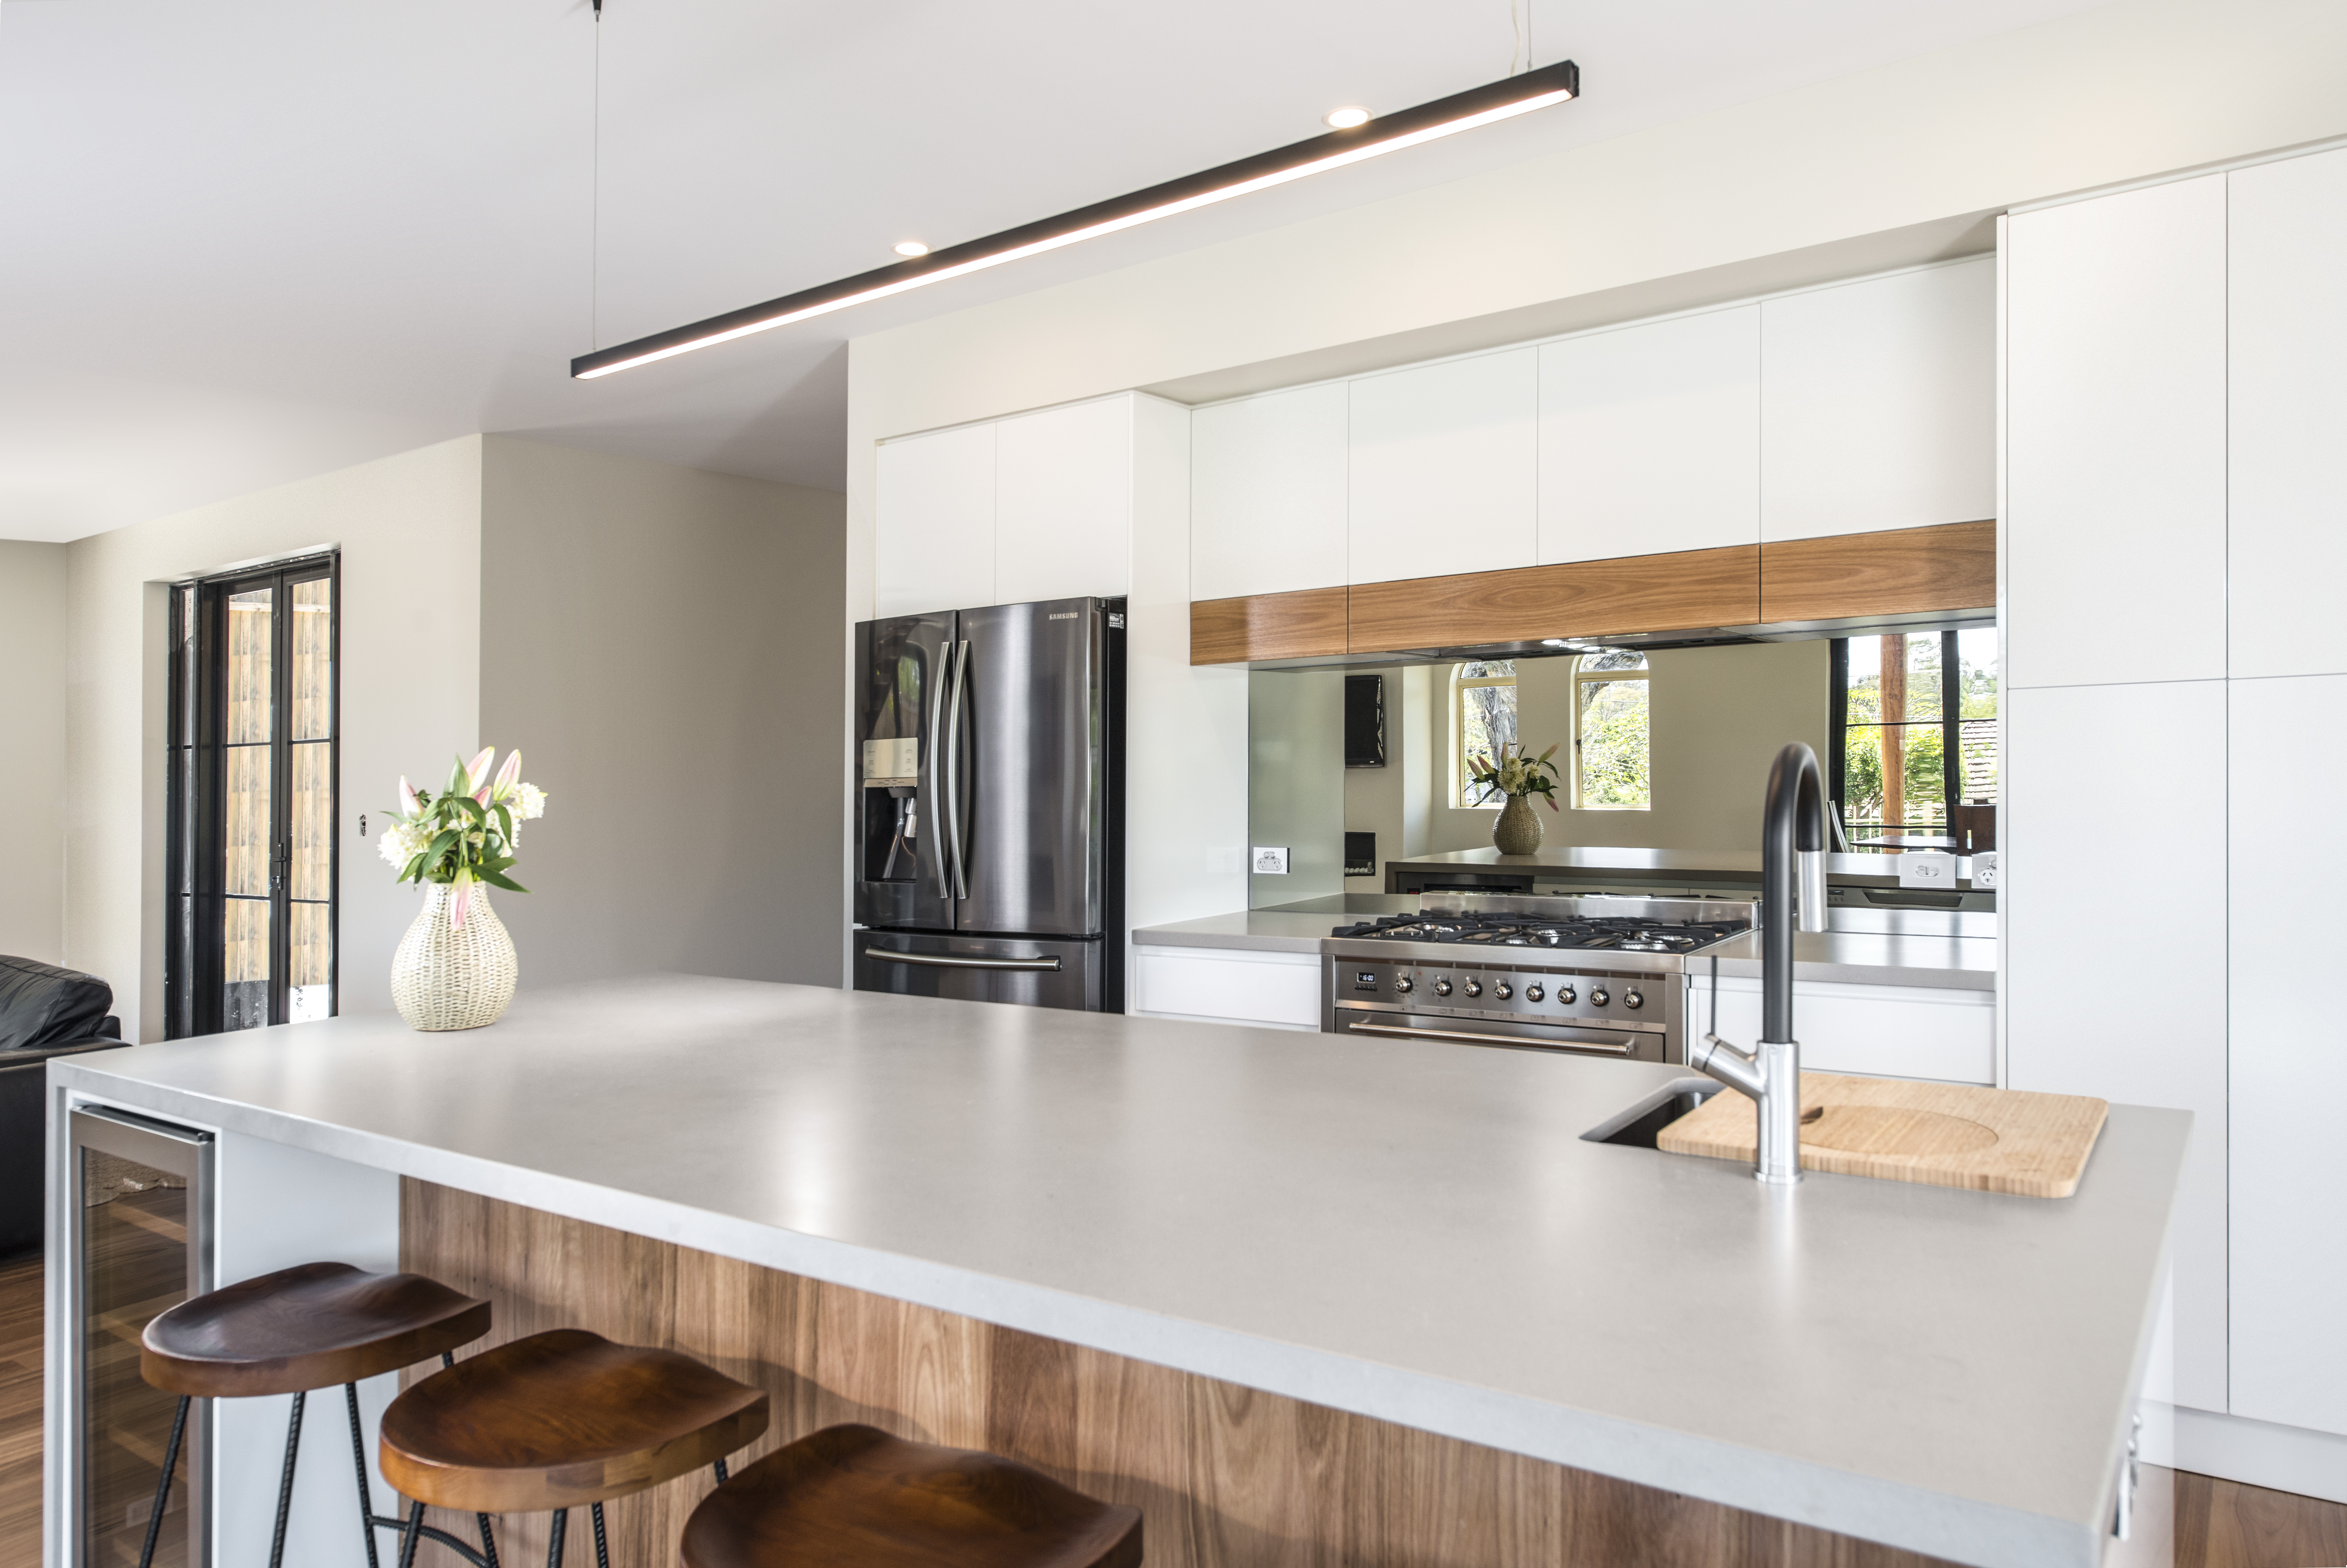 Kitchen Designs Gallery Kitchen Design And Inspiration Gallery  Wallspan Kitchens Adelaide